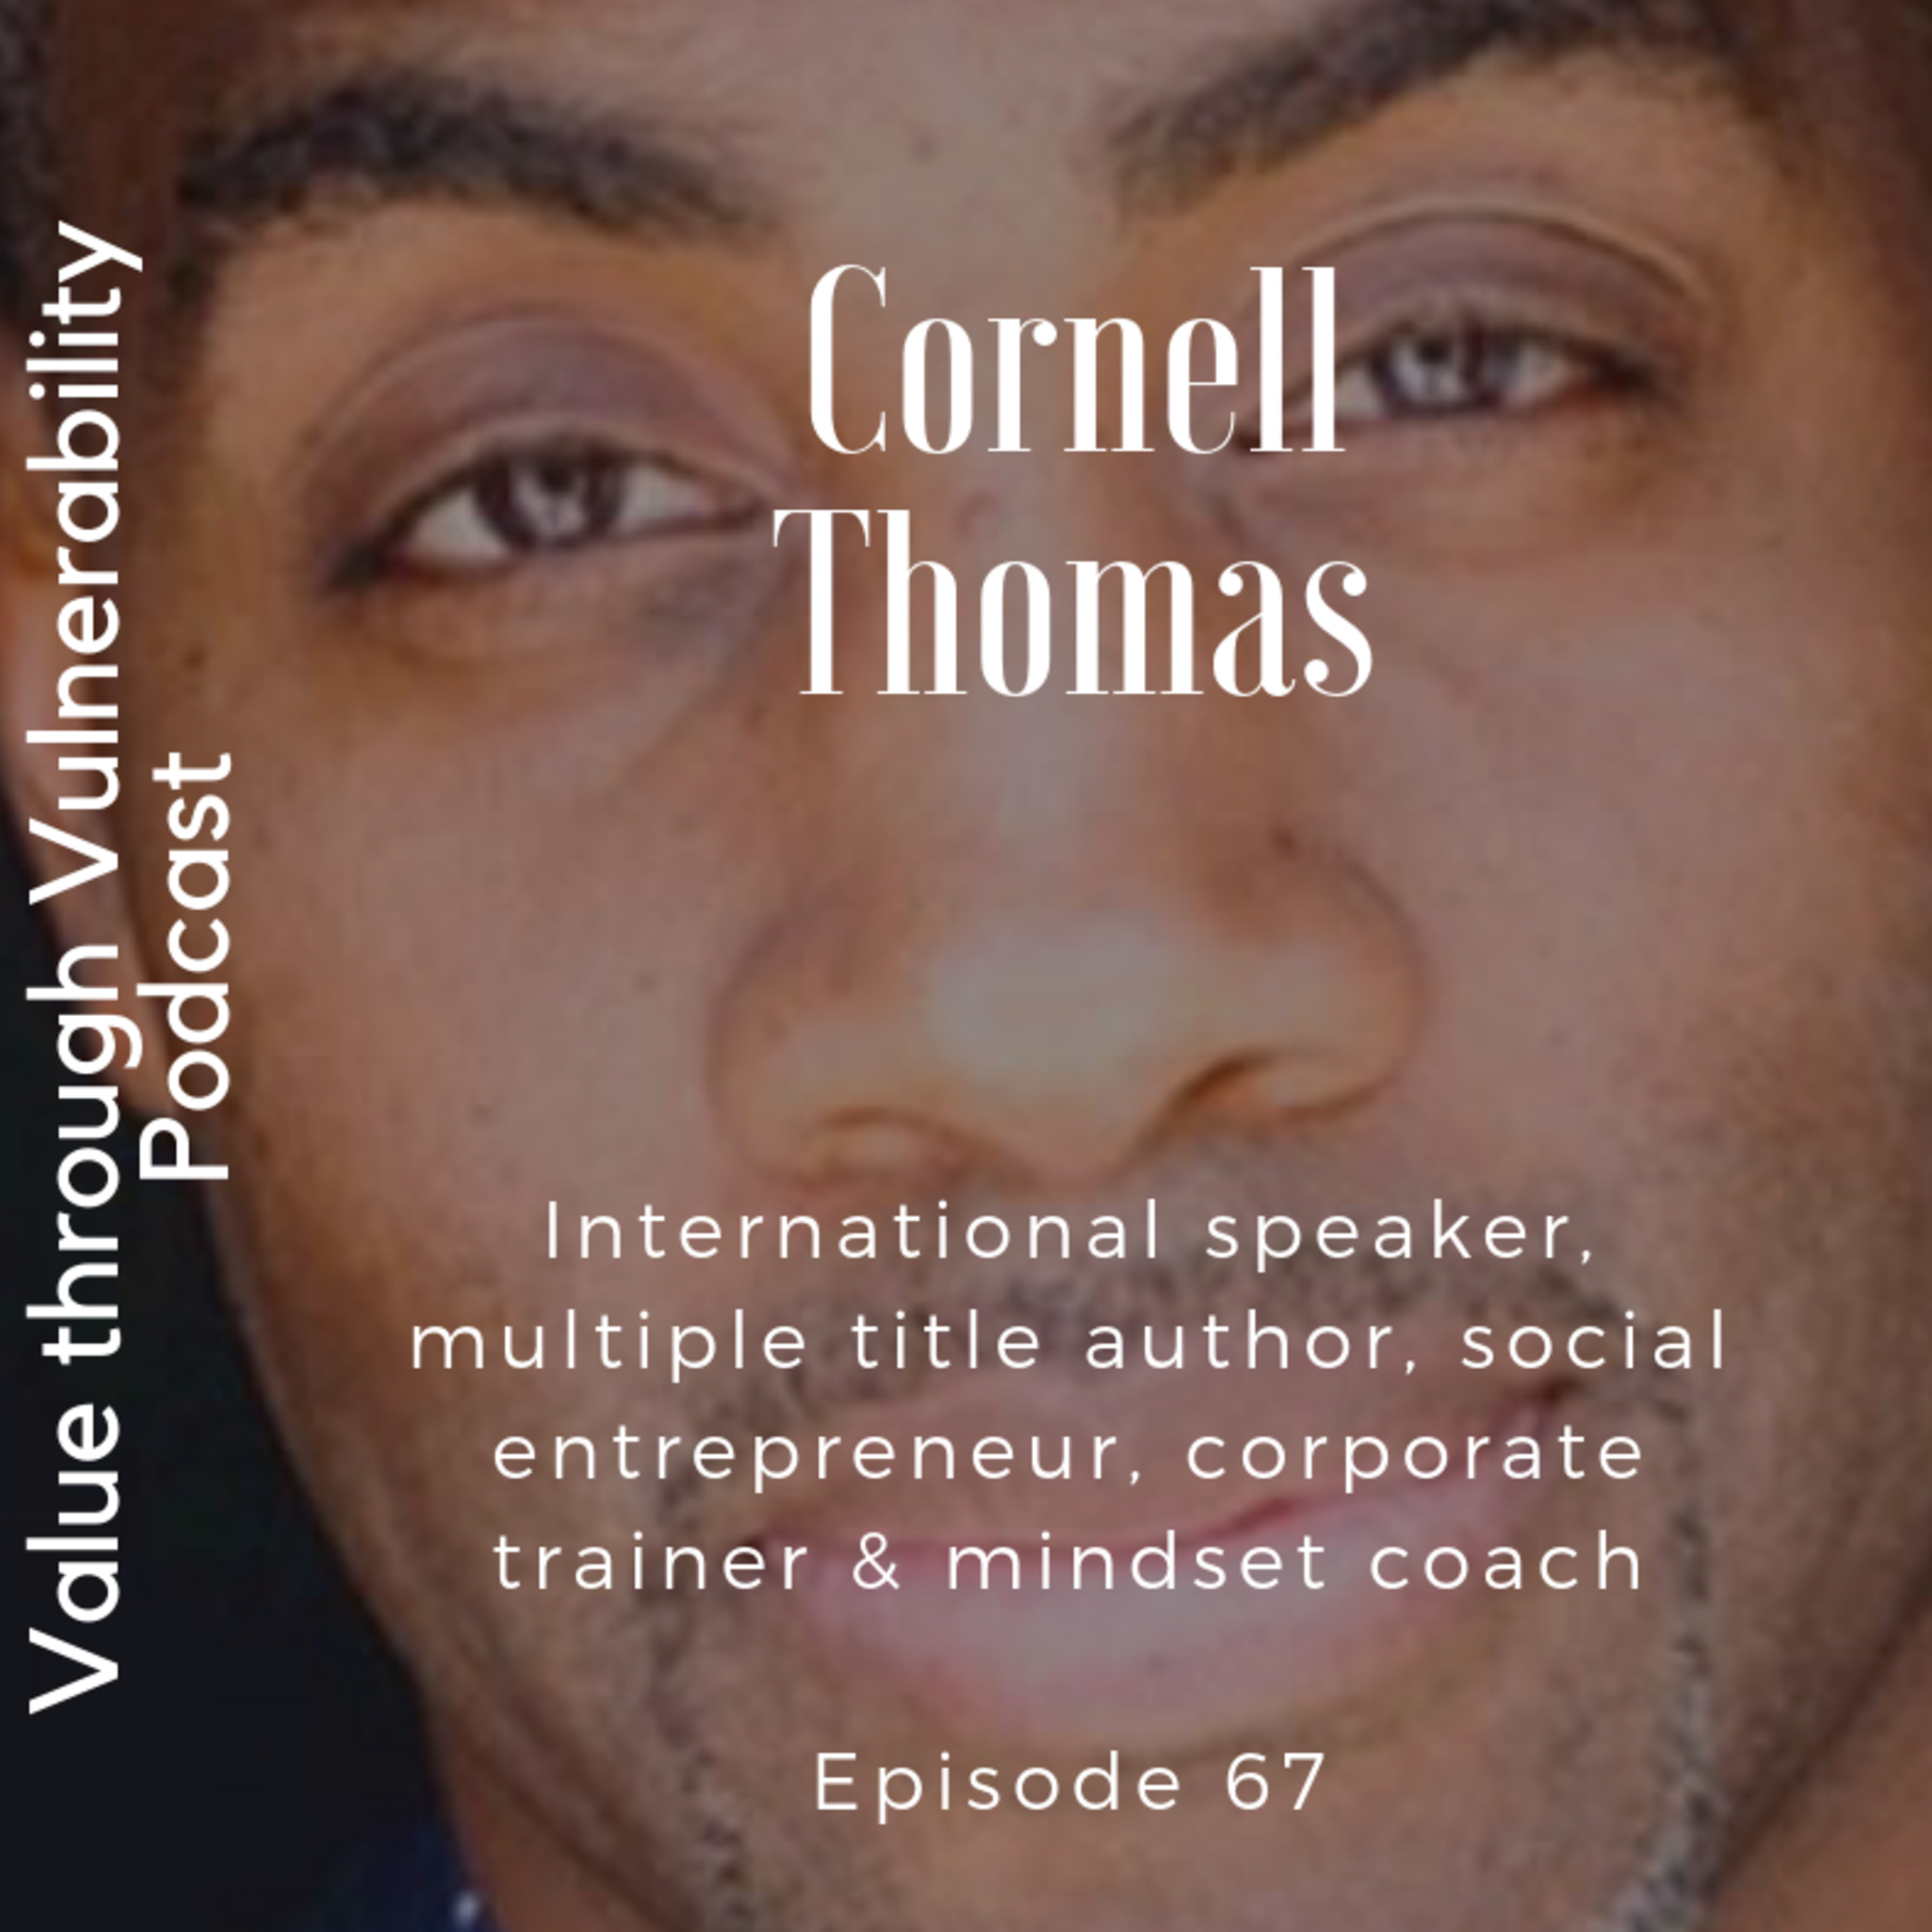 Episode 67 - Cornell Thomas, Motivational Speaker, Social Entrepreneur, Mindset Coach & more